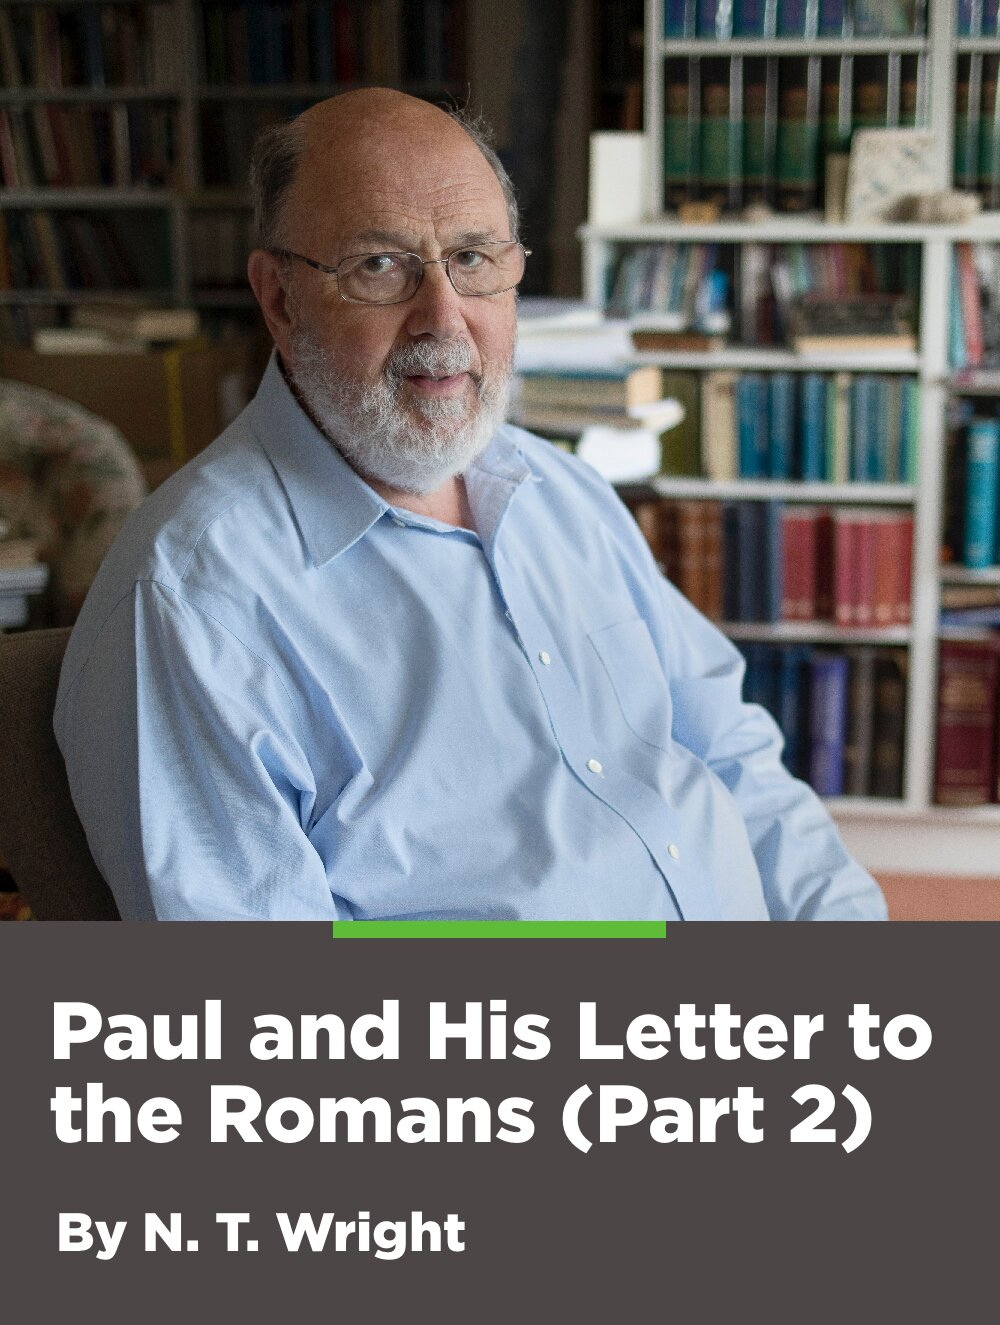 Paul and His Letter to the Romans Part 2